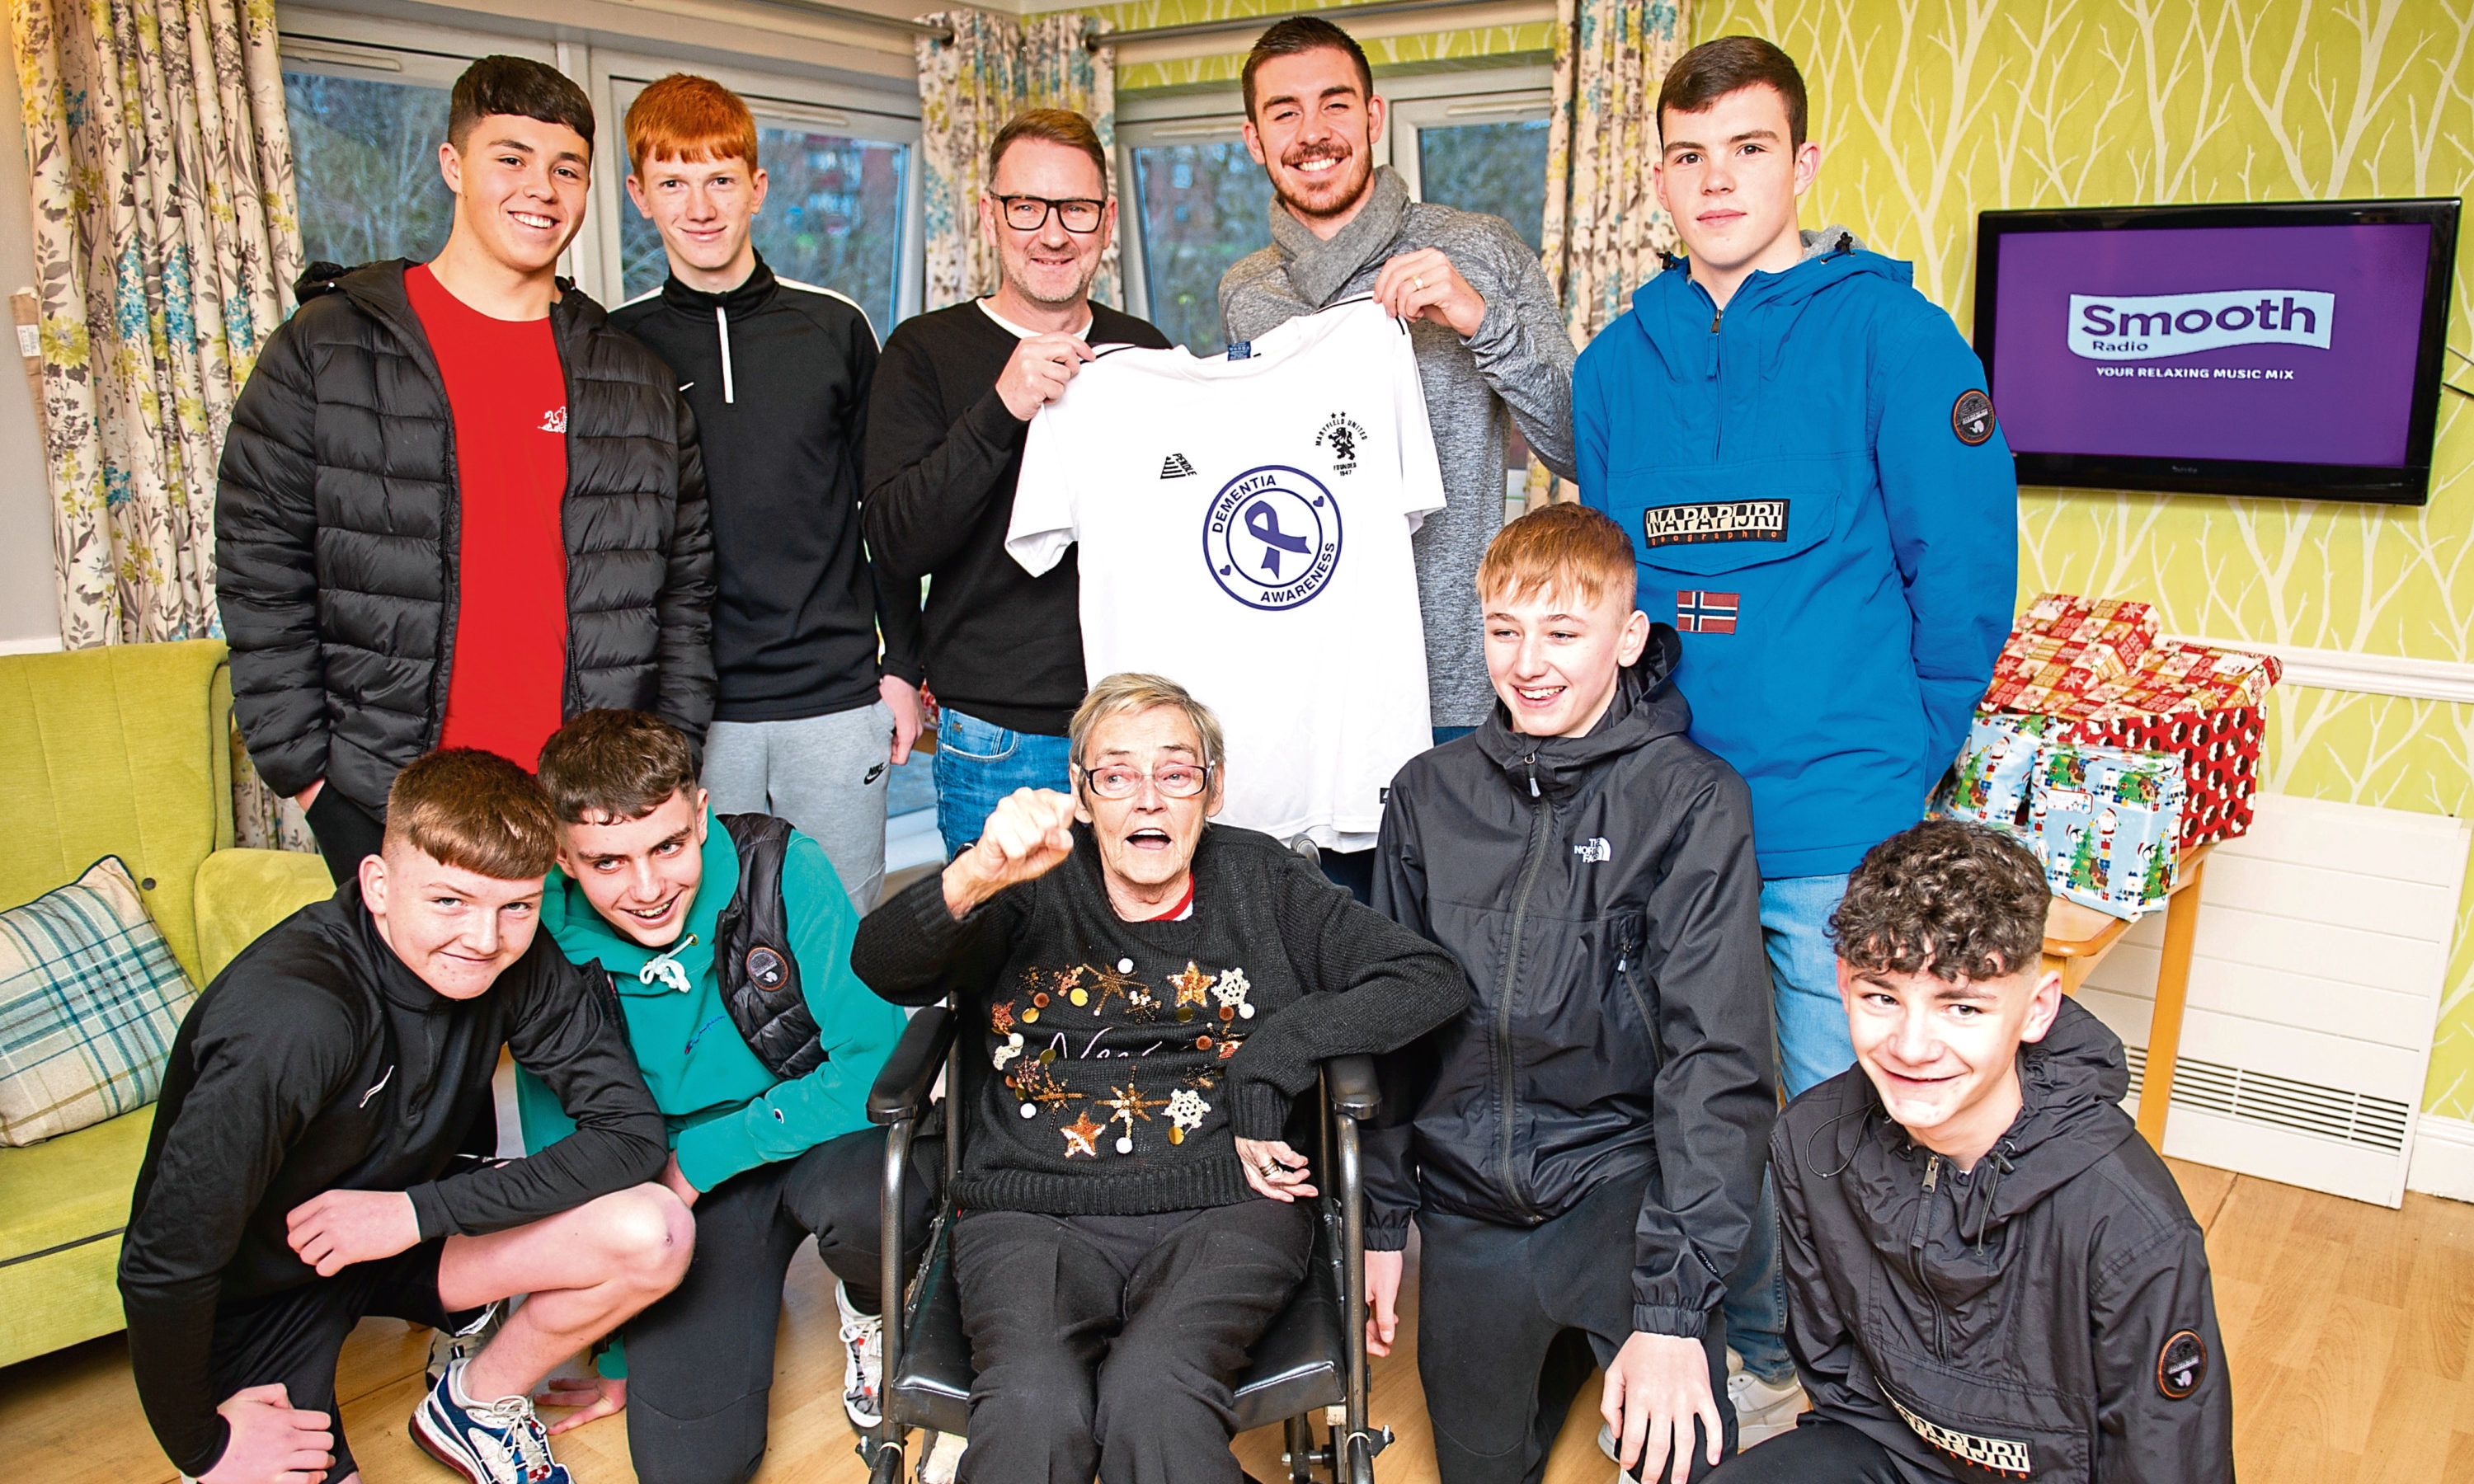 Scott receiving the new kit from Declan, accompanied by some of the players and his mum, Betty.